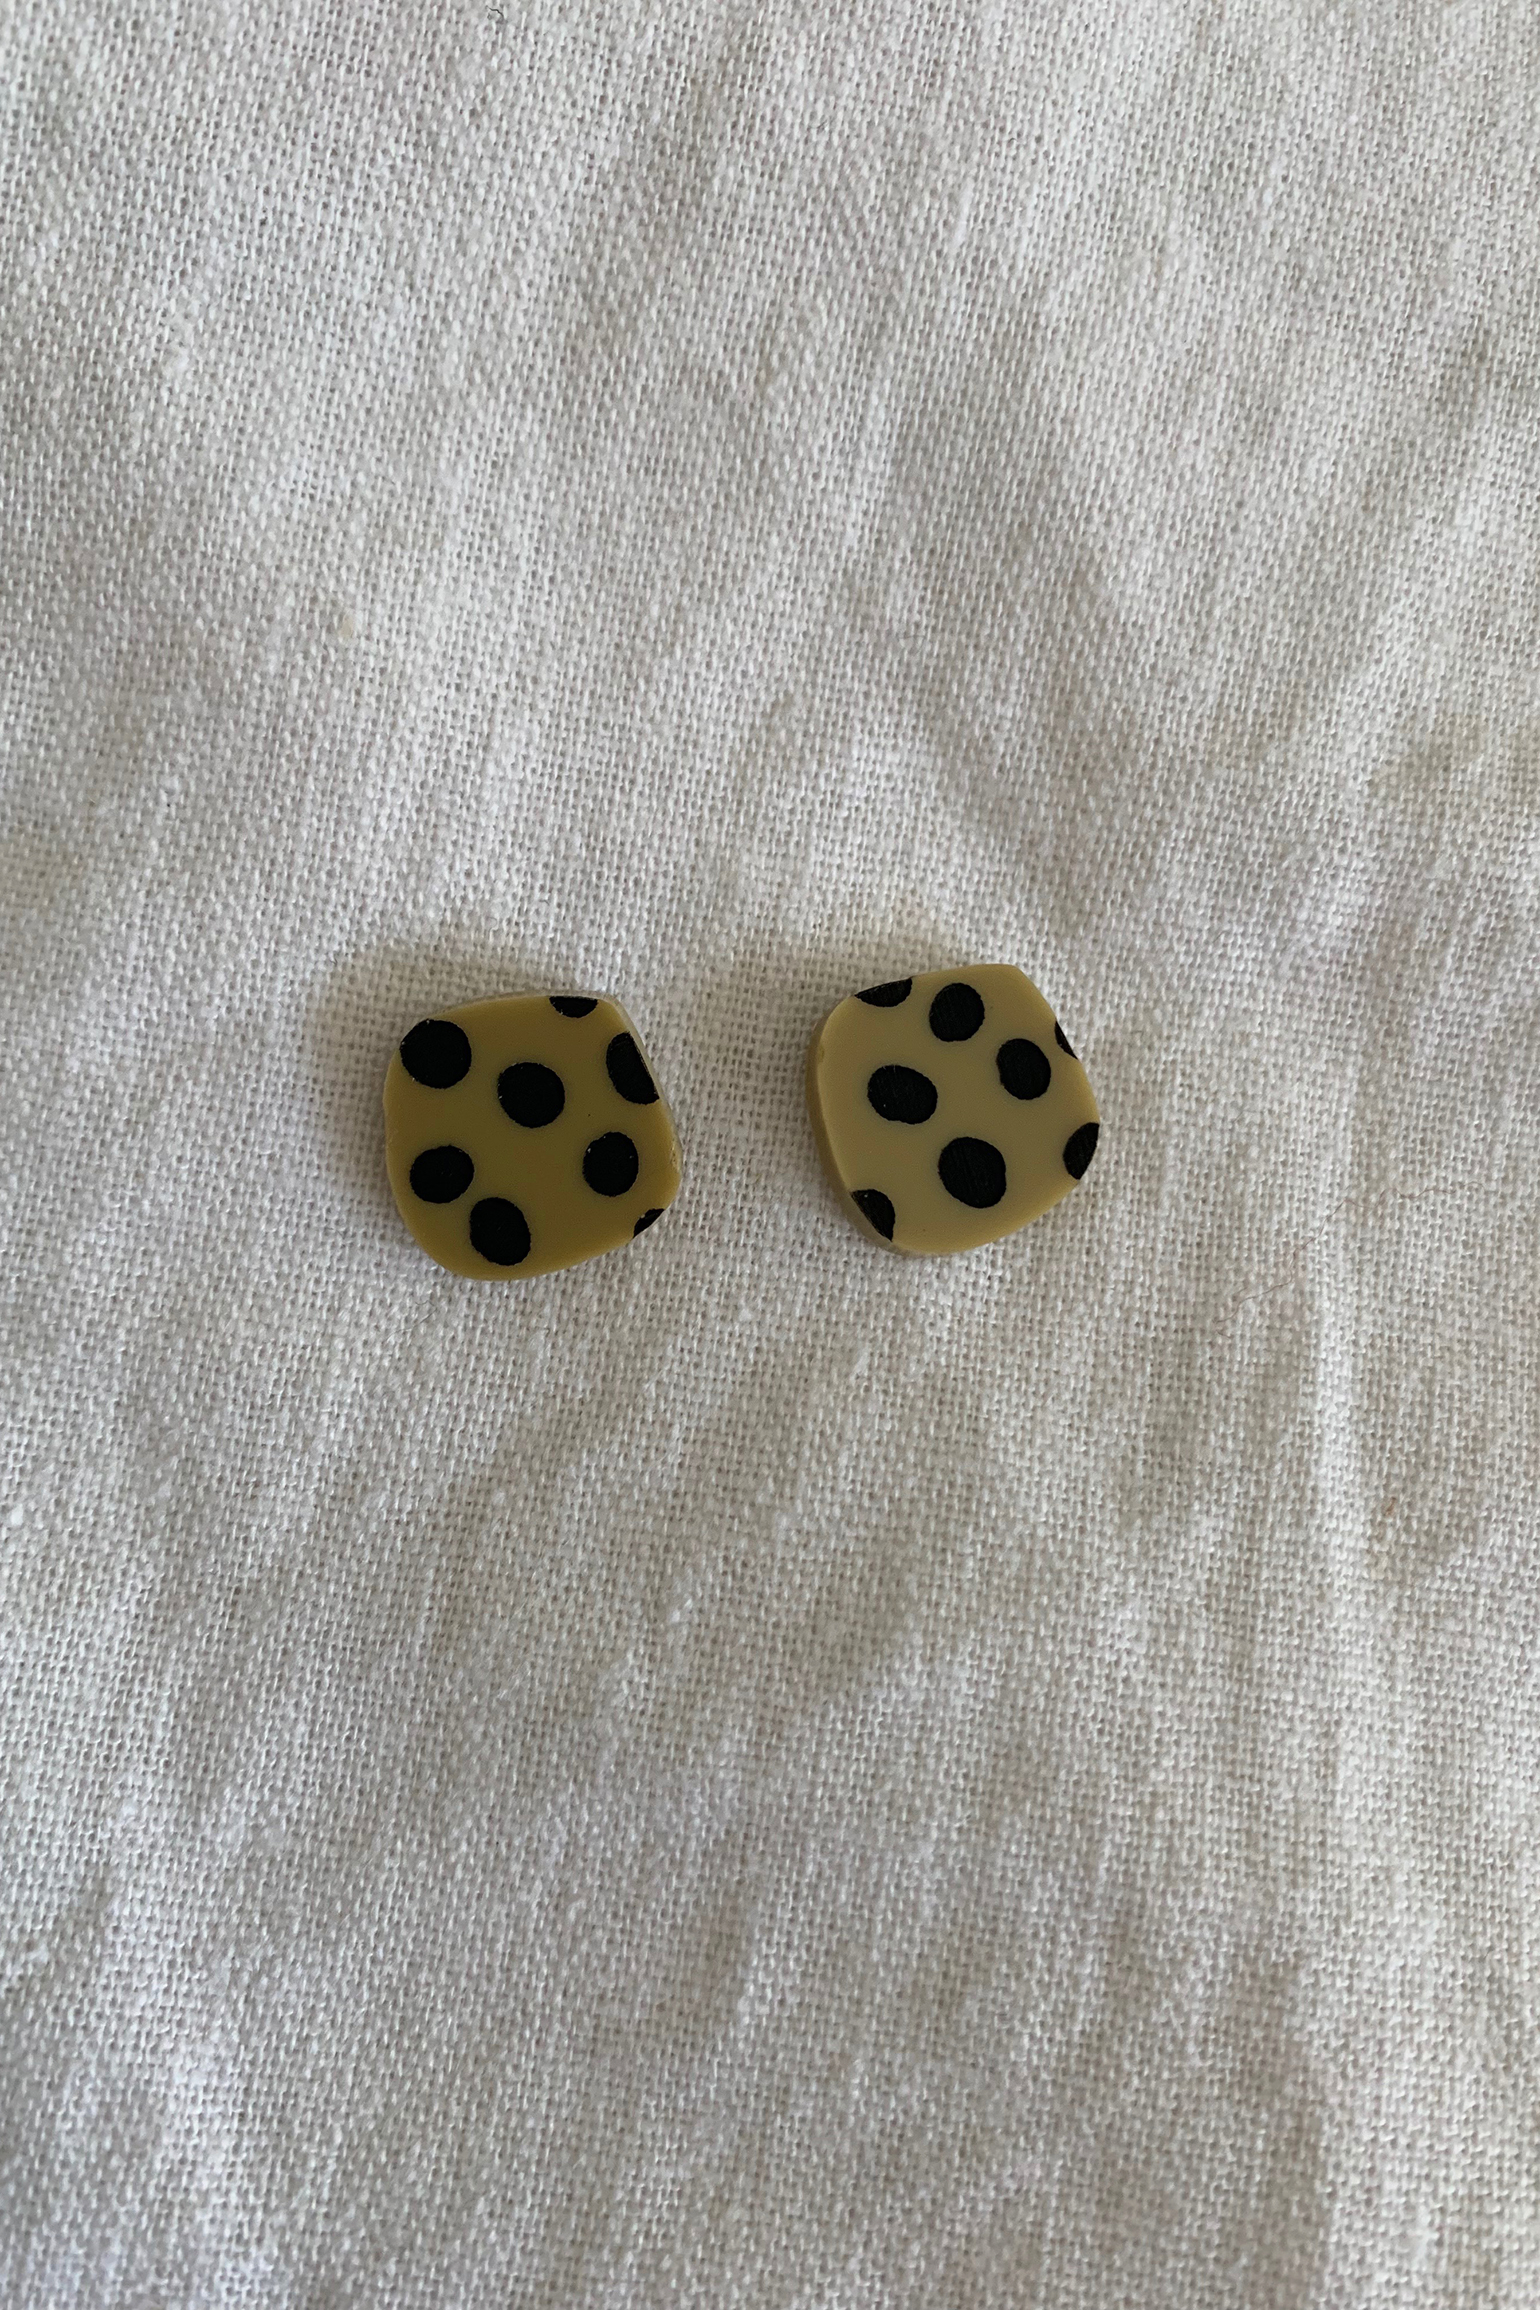 Hey Ronnie Organic Square Spot Earrings